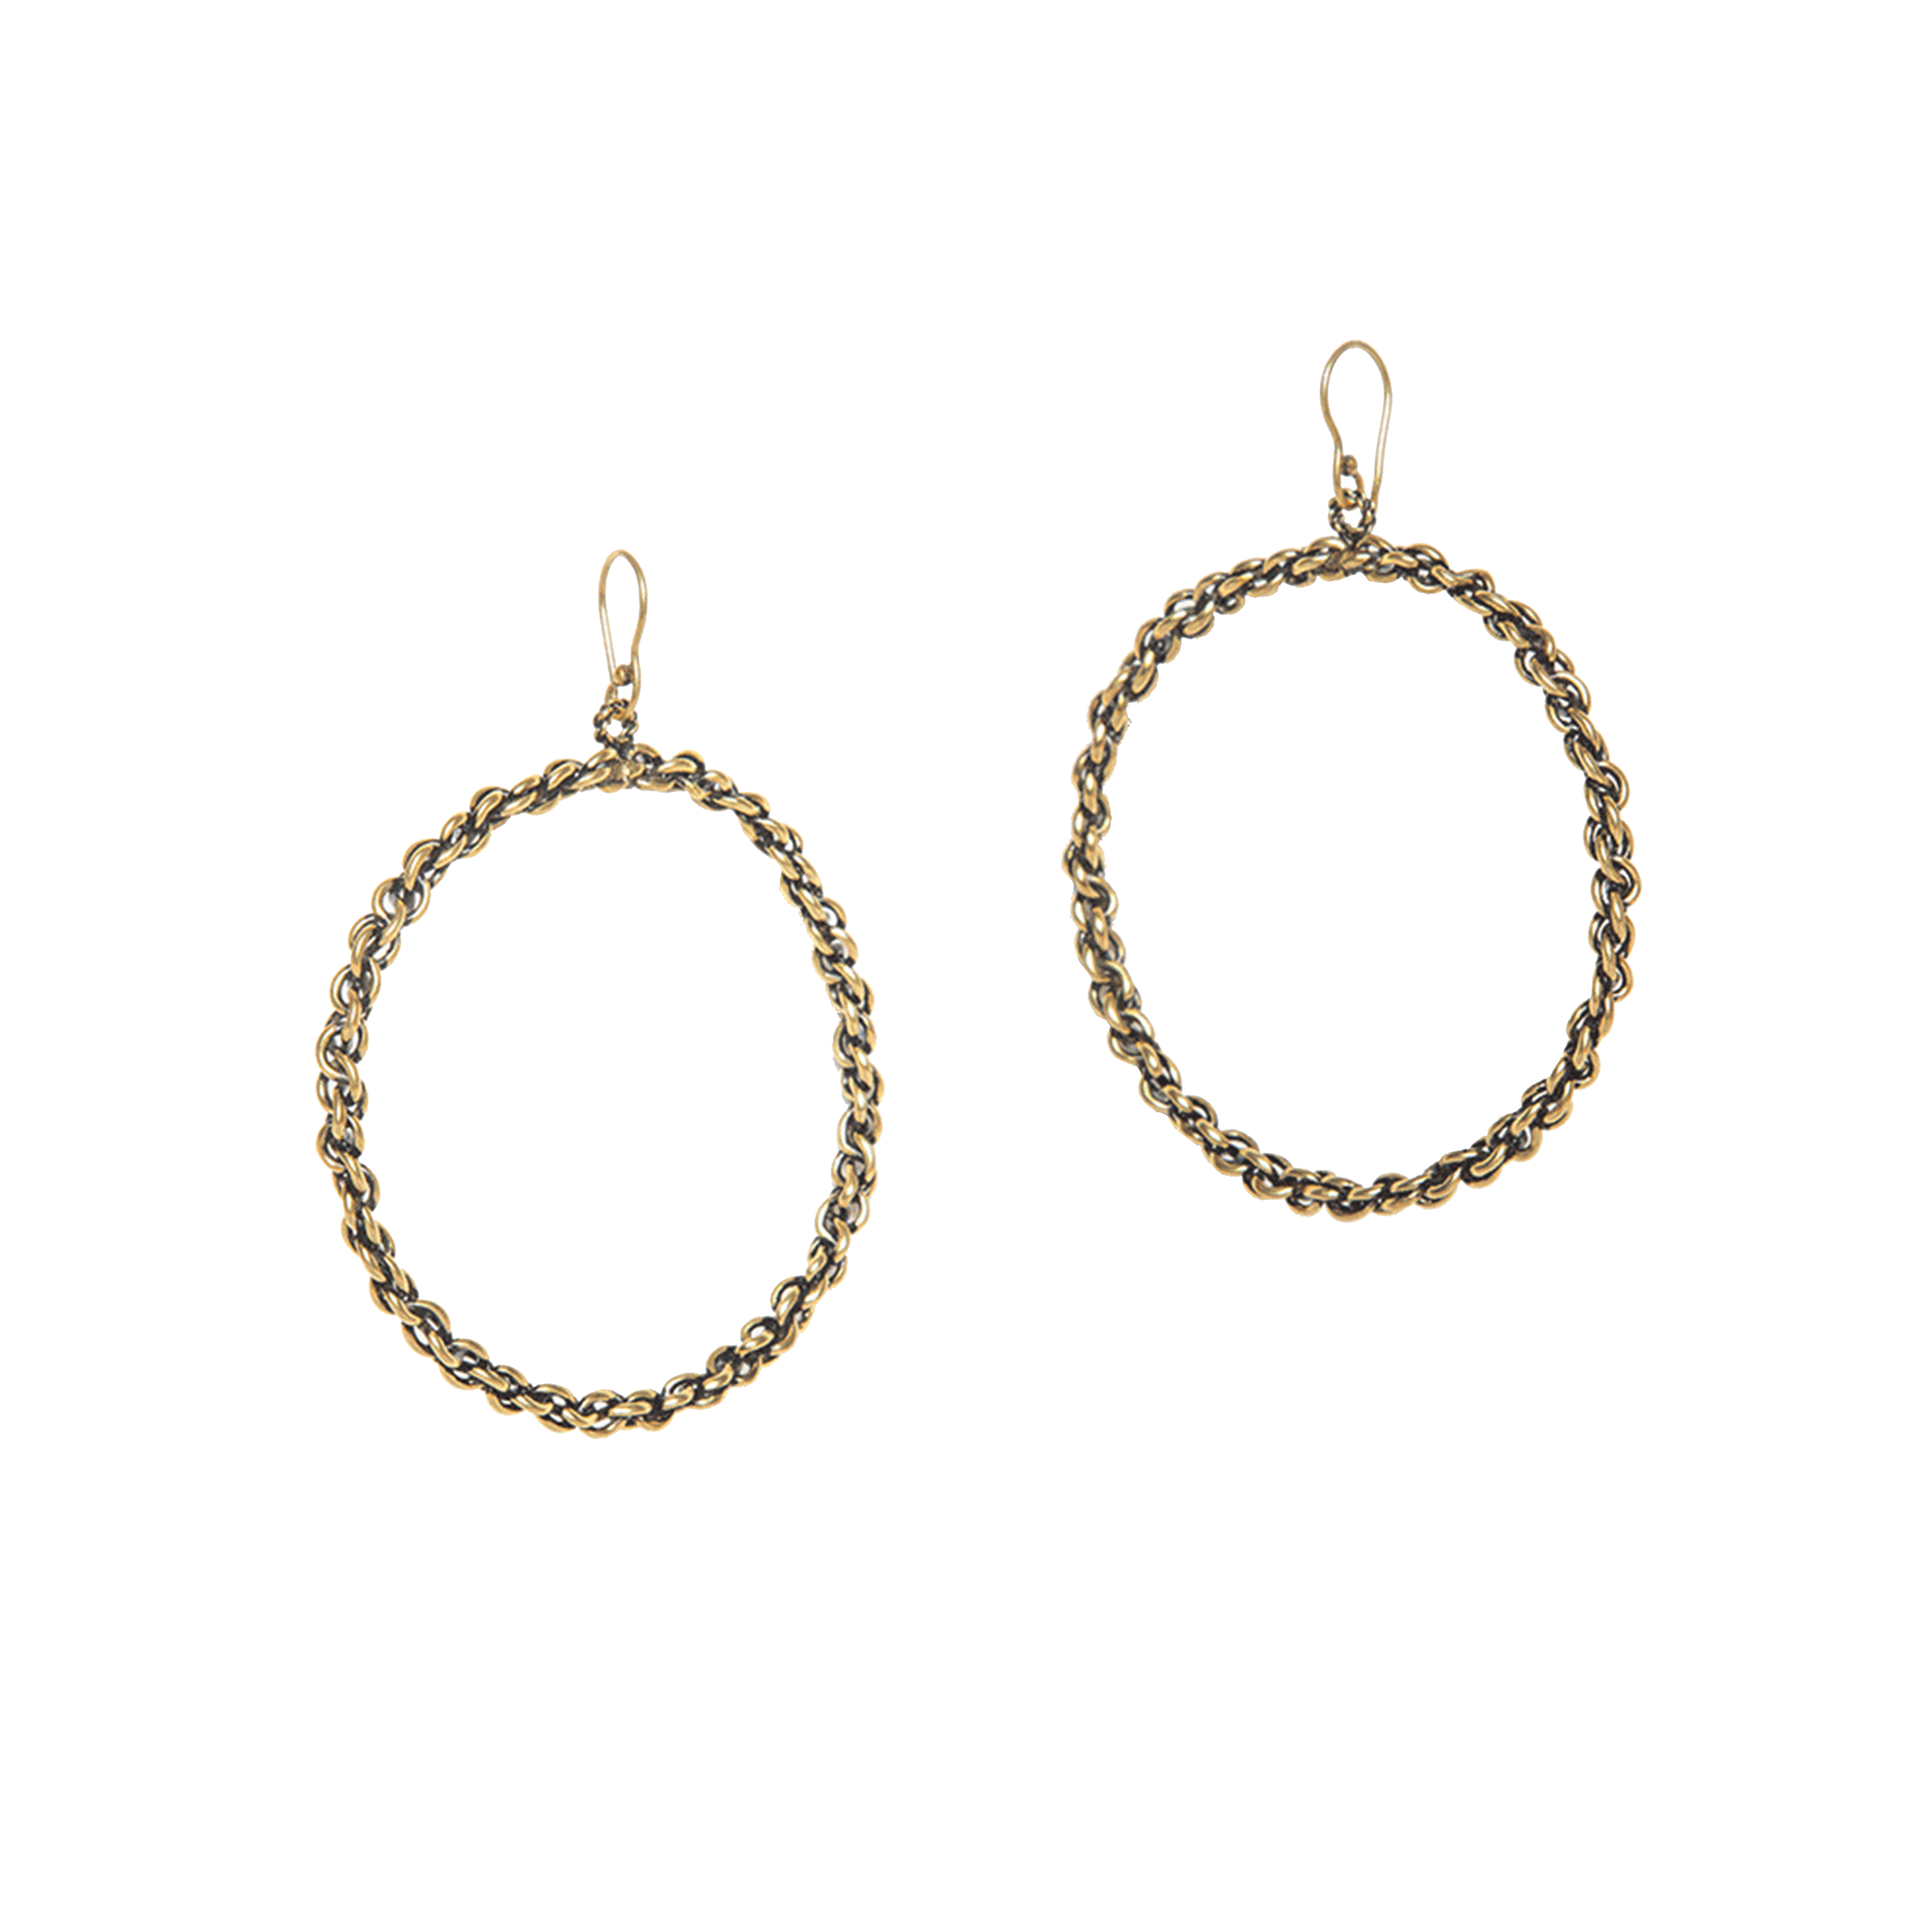 Shaya_Britney S Hoops in Gold Plating